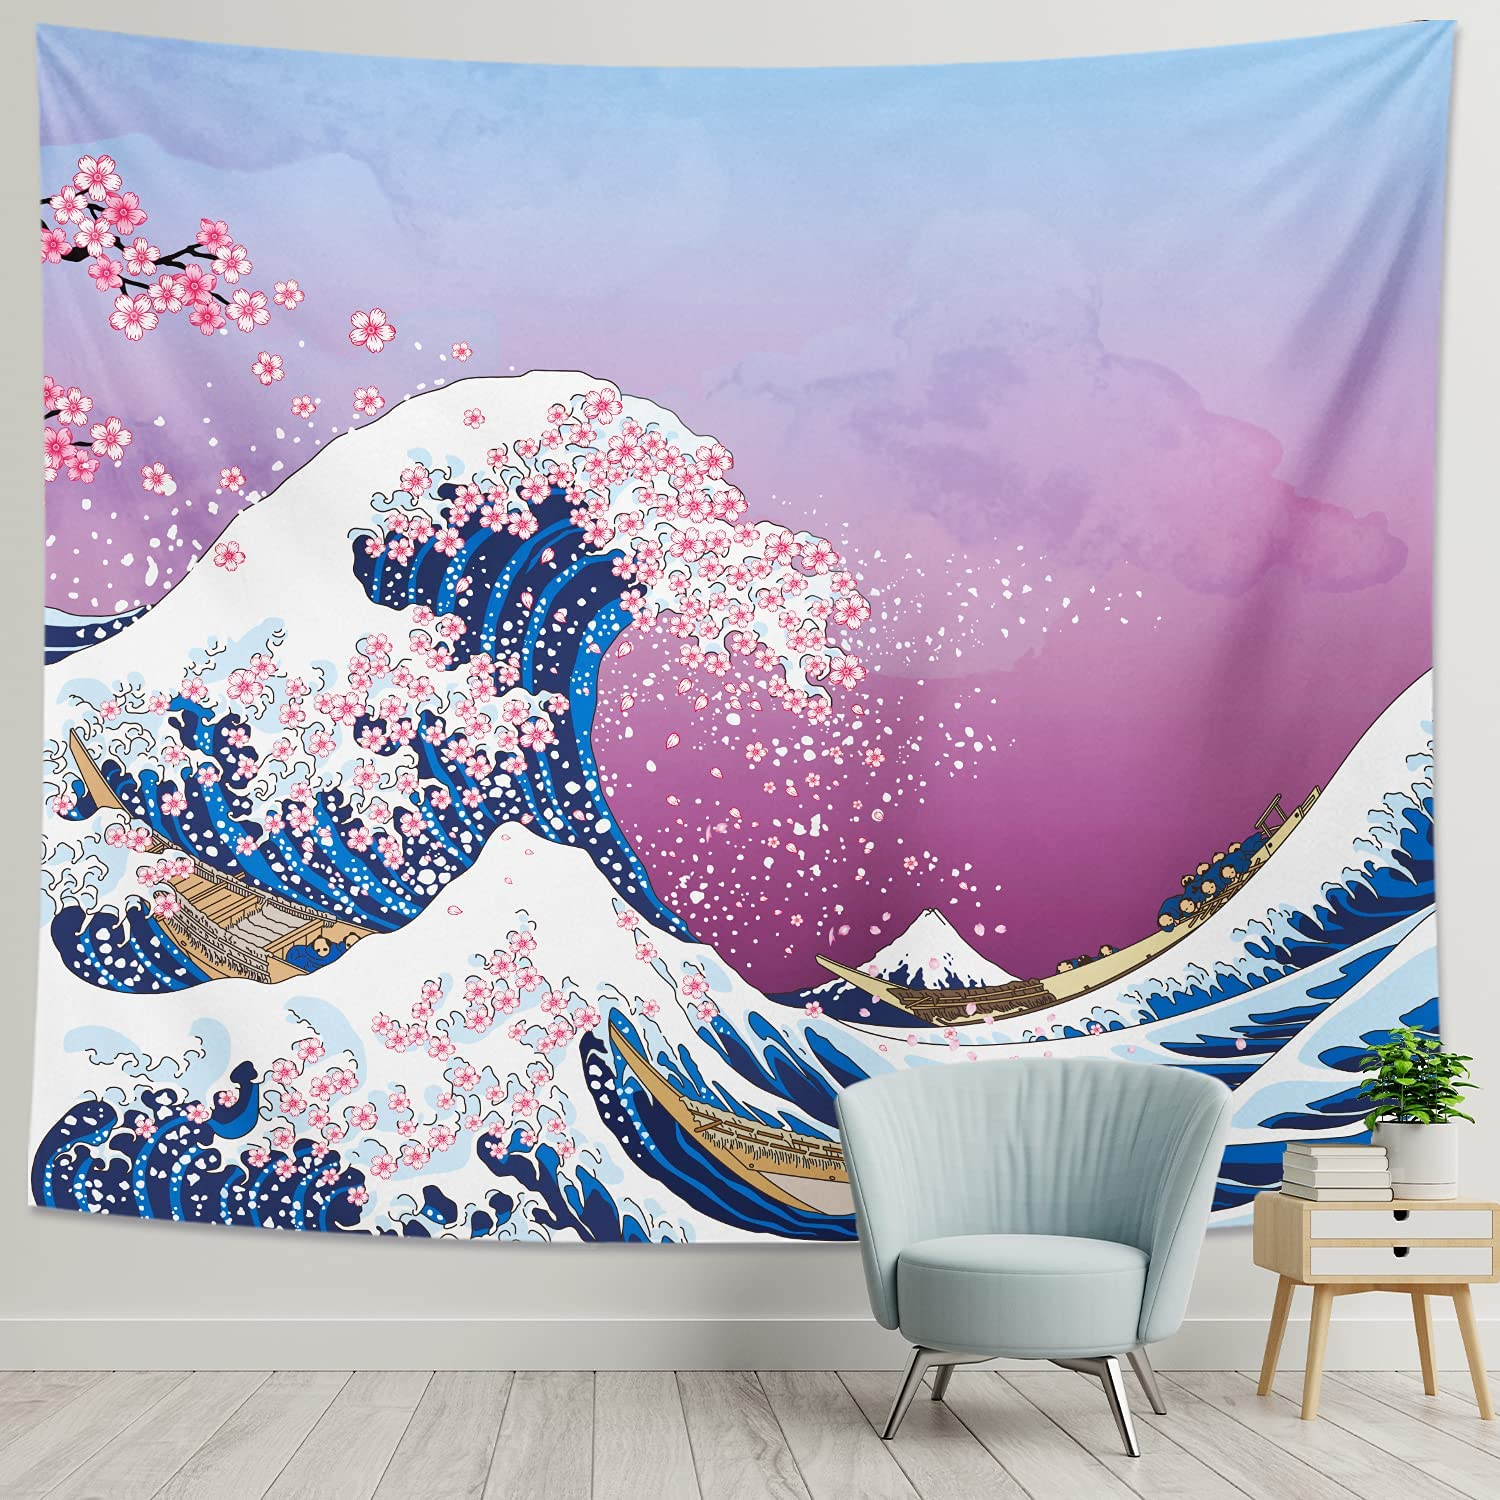 DESIHOM Japanese Tapestry Kanagawa Great Wave Tapestry Anime Tapestry Pink Cherry Blossom Art Wall Tapestry for Bedroom Living Room Dorm Home Decor 59x51 Inch